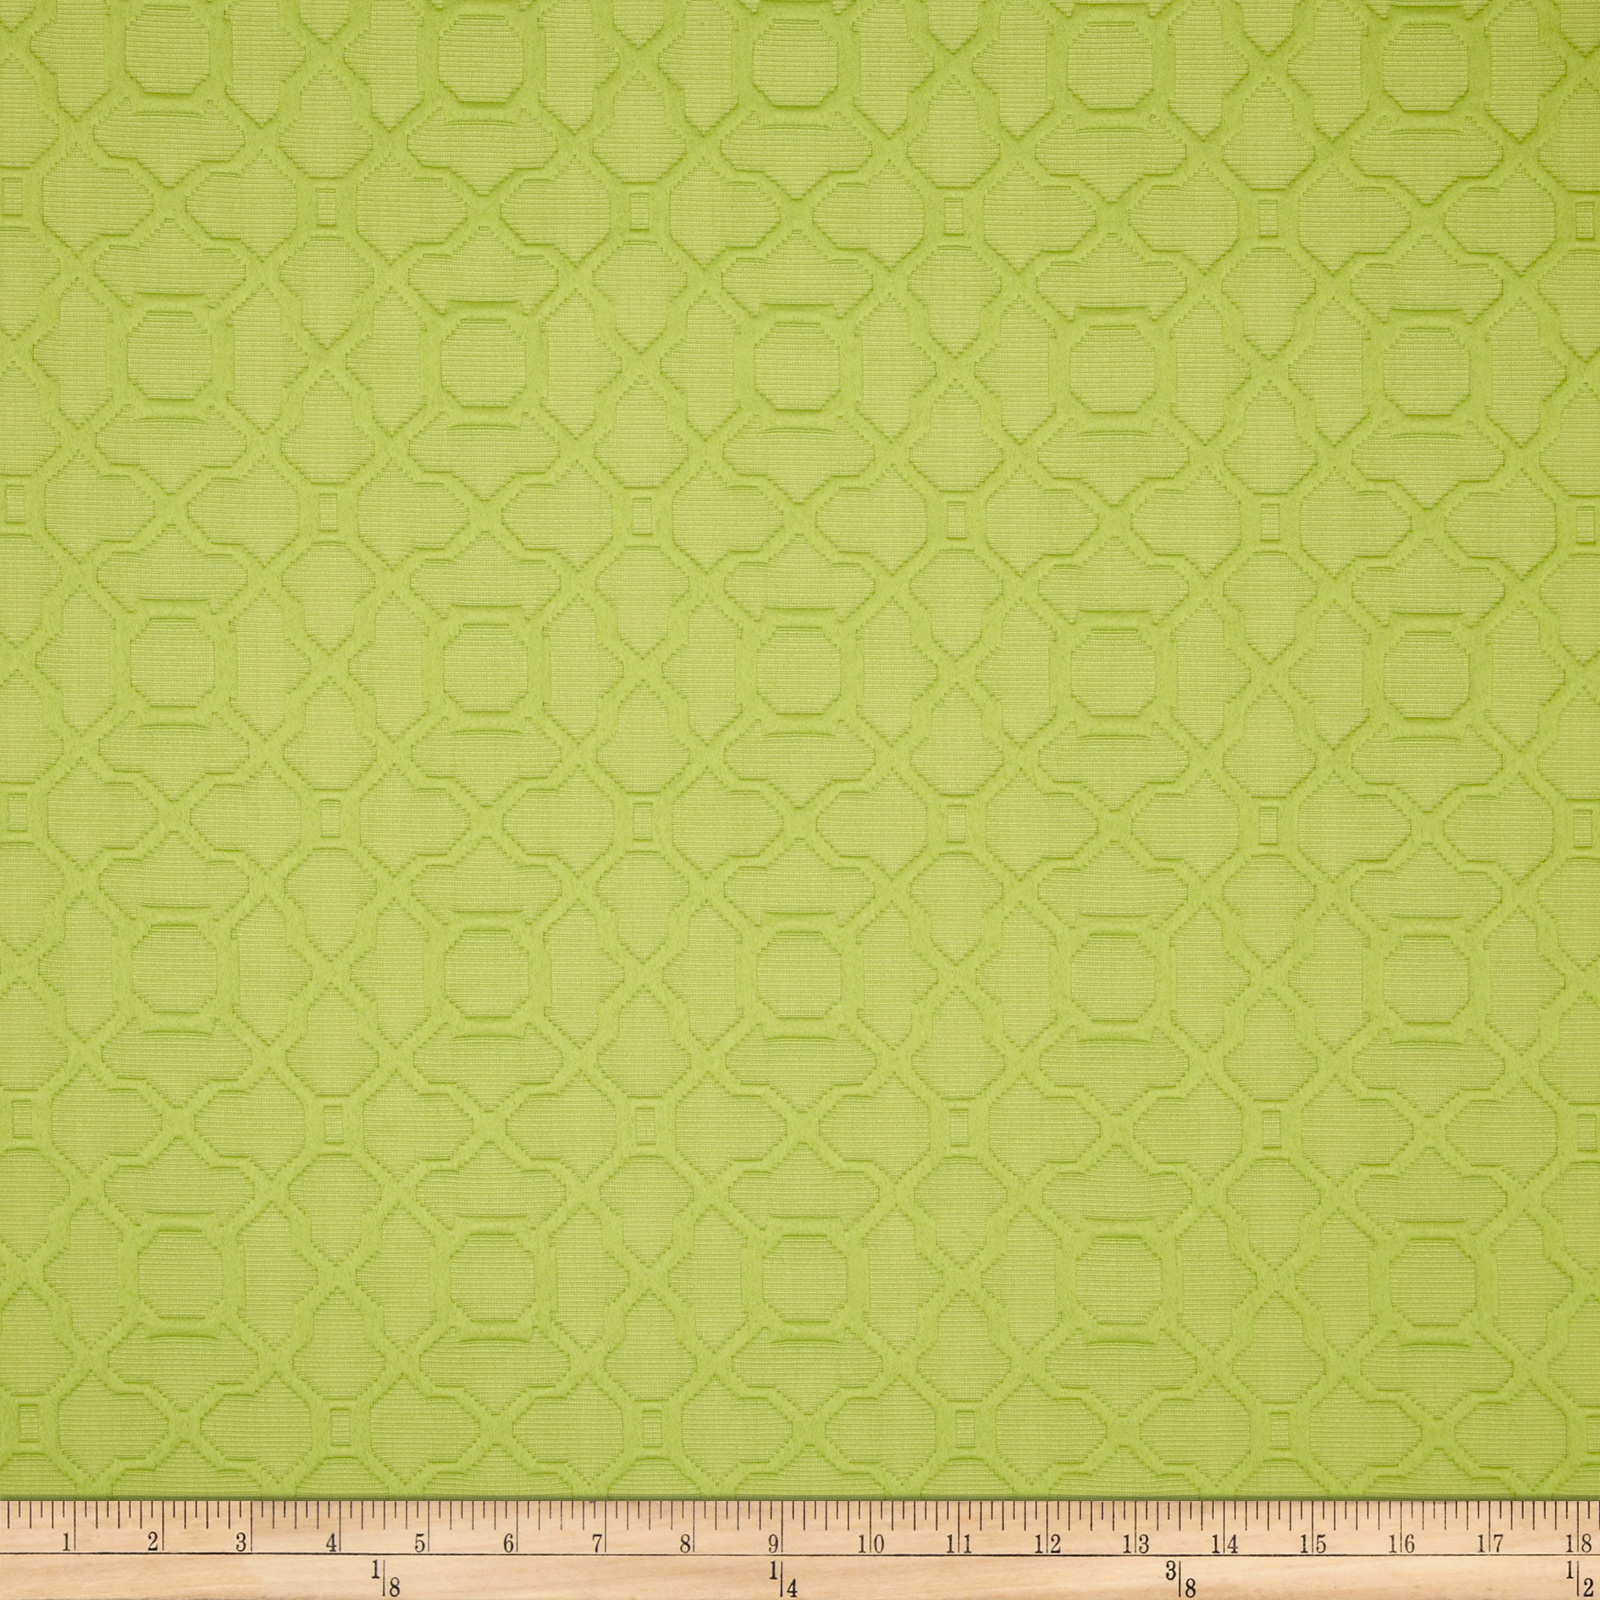 Waverly Marin Matelasse Lime Fabric